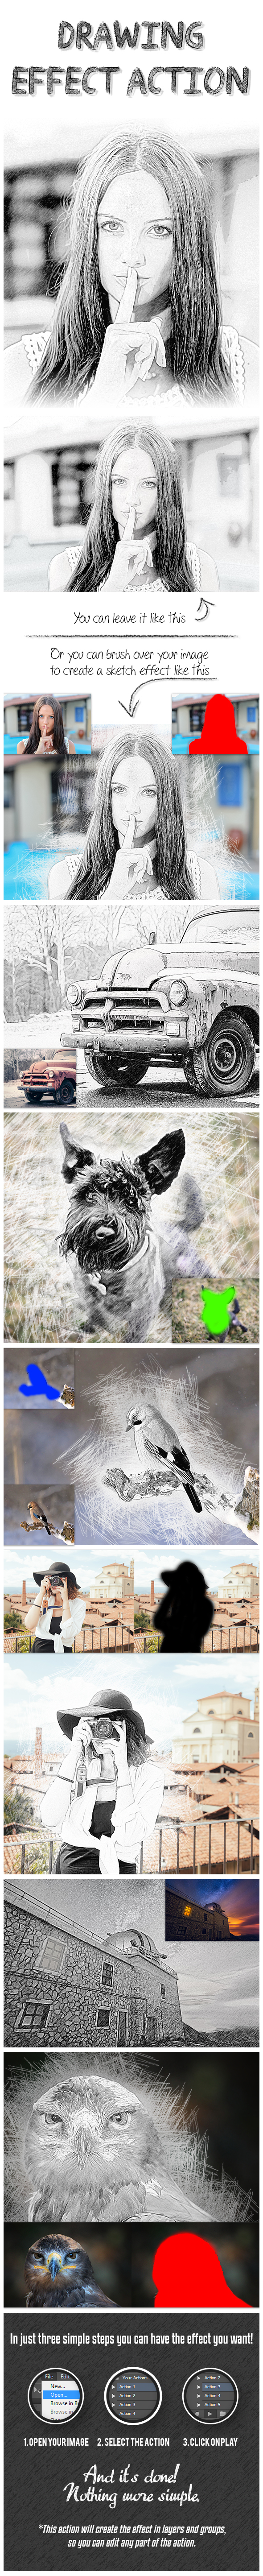 Drawing Effect Photoshop Action - Photo Effects Actions